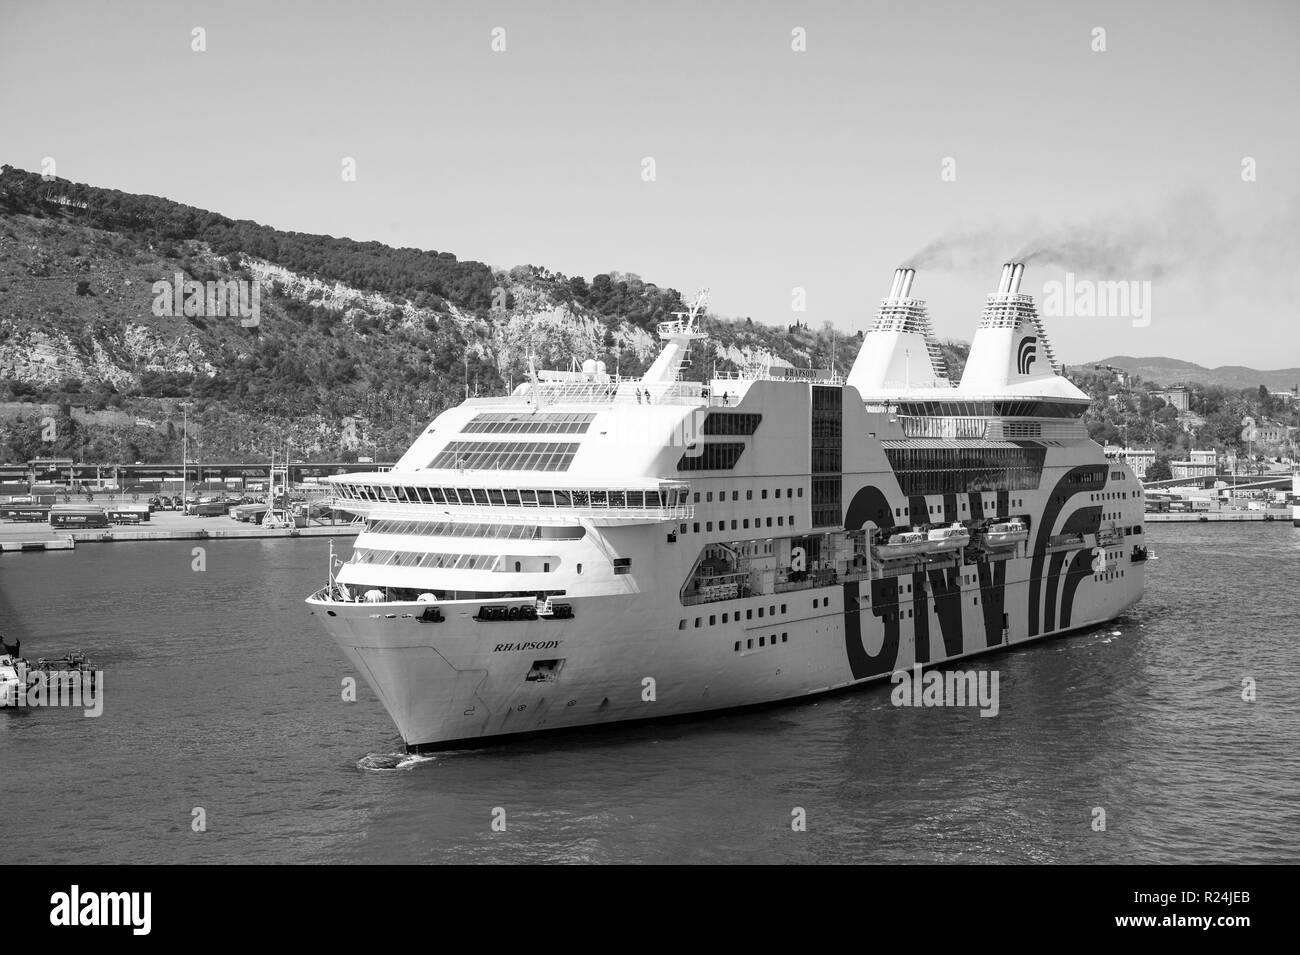 Barcelona, Spain - March 30, 2016: passenger ship GNV Rhapsody Genova in harbor on mountain landscape. Cruise destination and trip. Summer vacation holiday. Wanderlust. Travelling by sea. - Stock Image